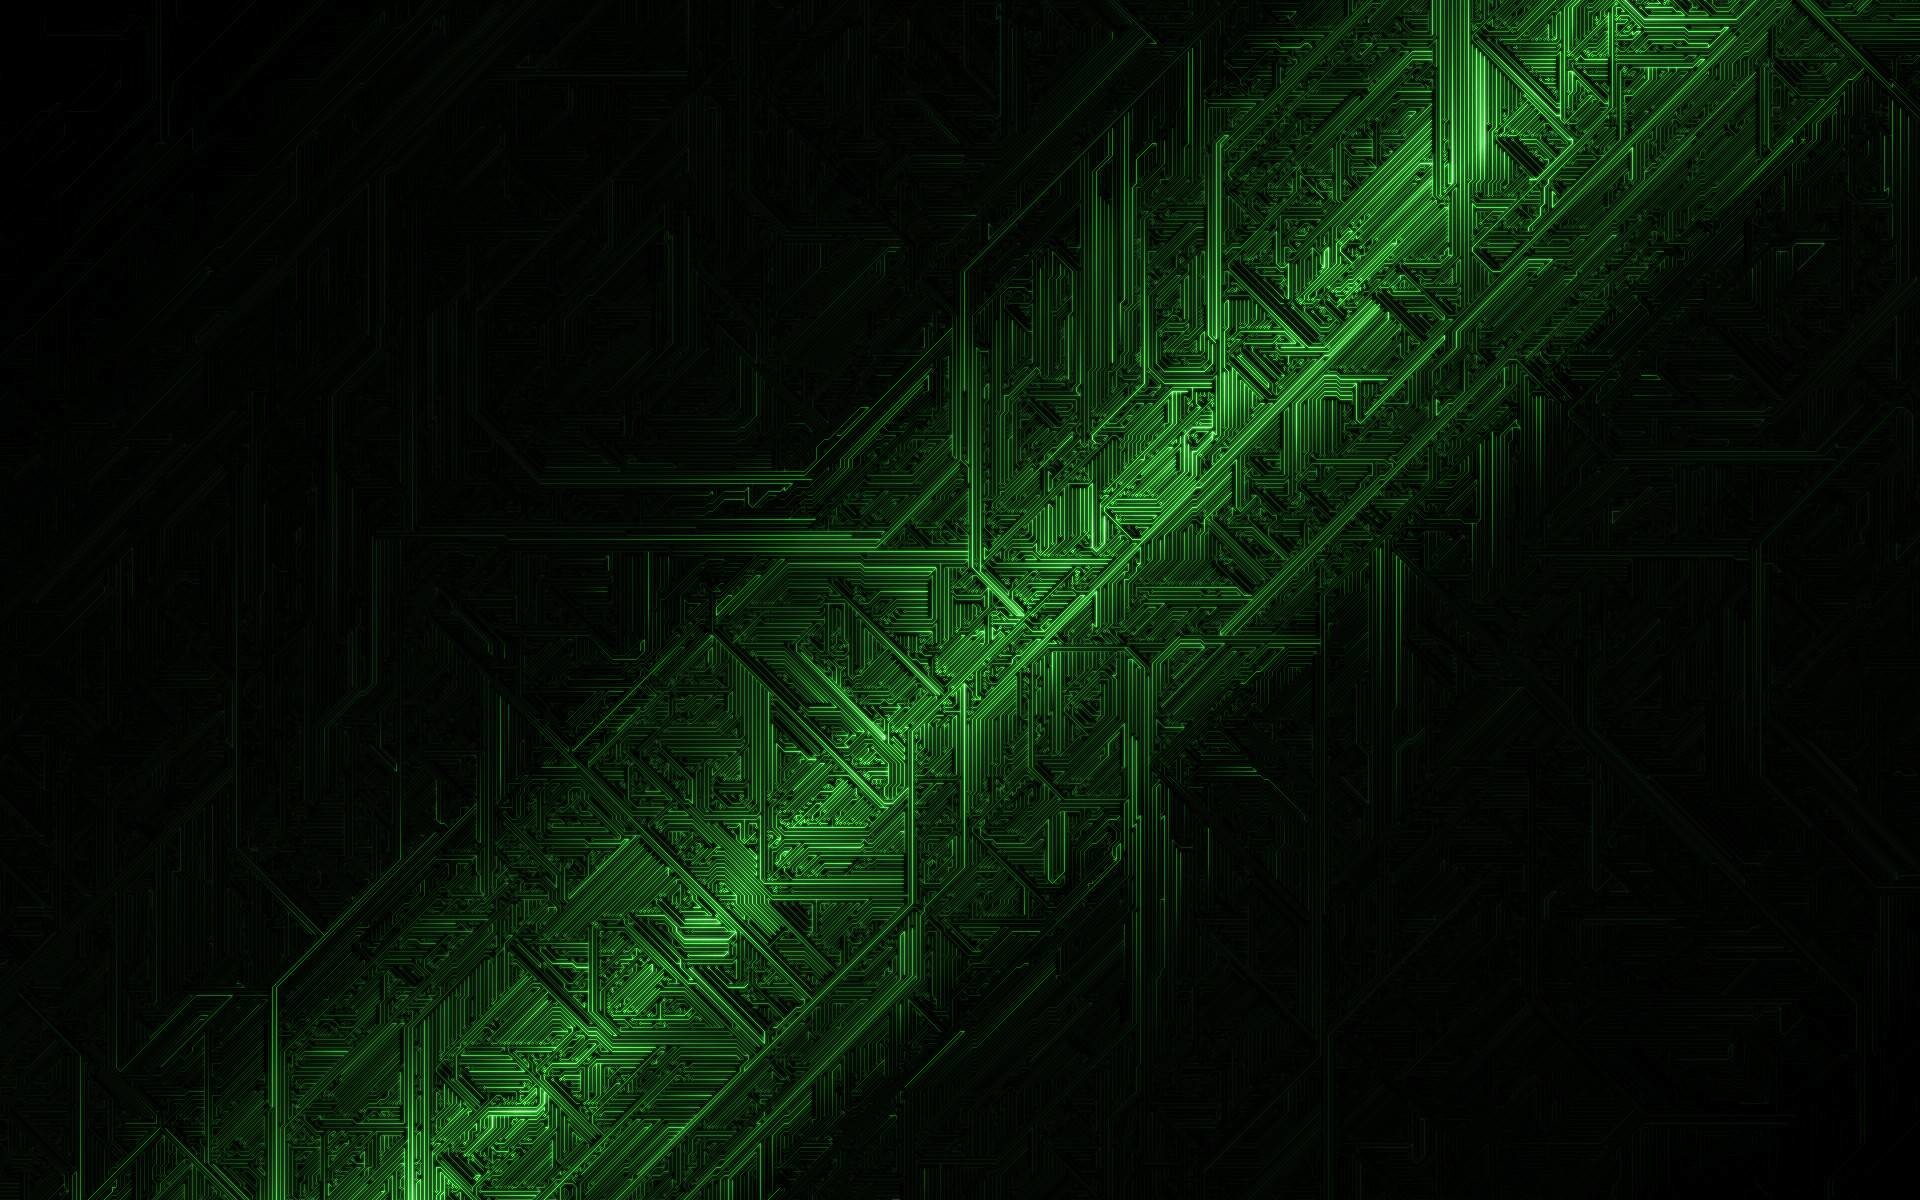 Black and Green Wallpaper (75+ images)